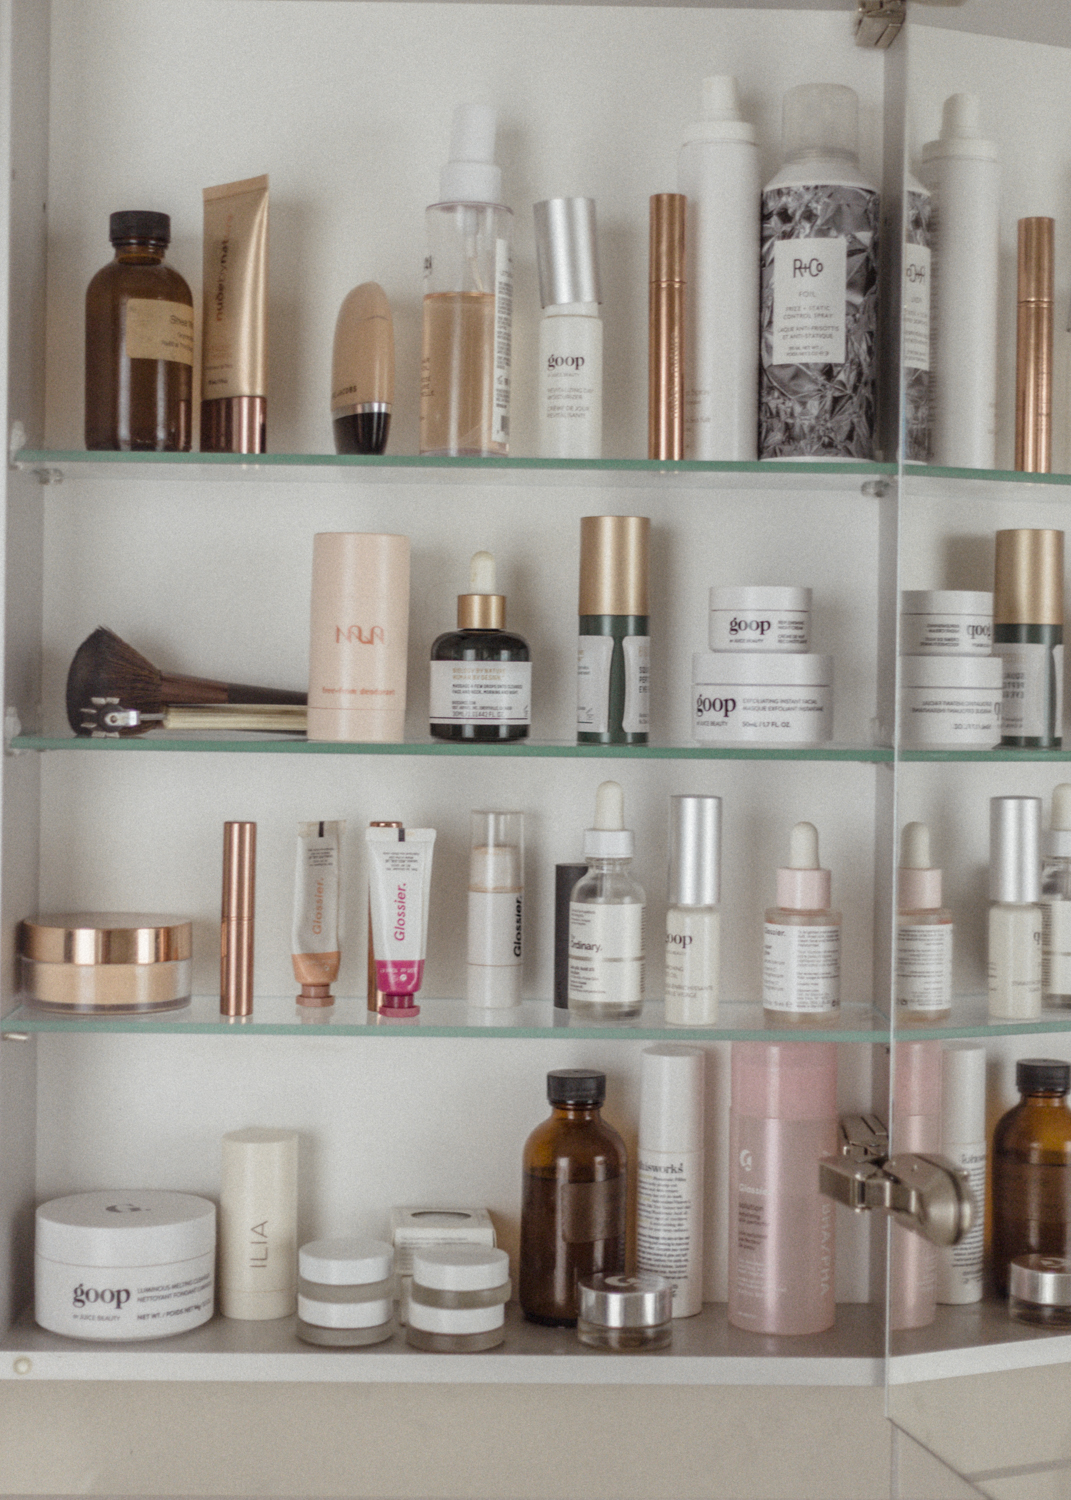 Beauty Shelf The Almost Clean Beauty Shelf The Products I Have Tested